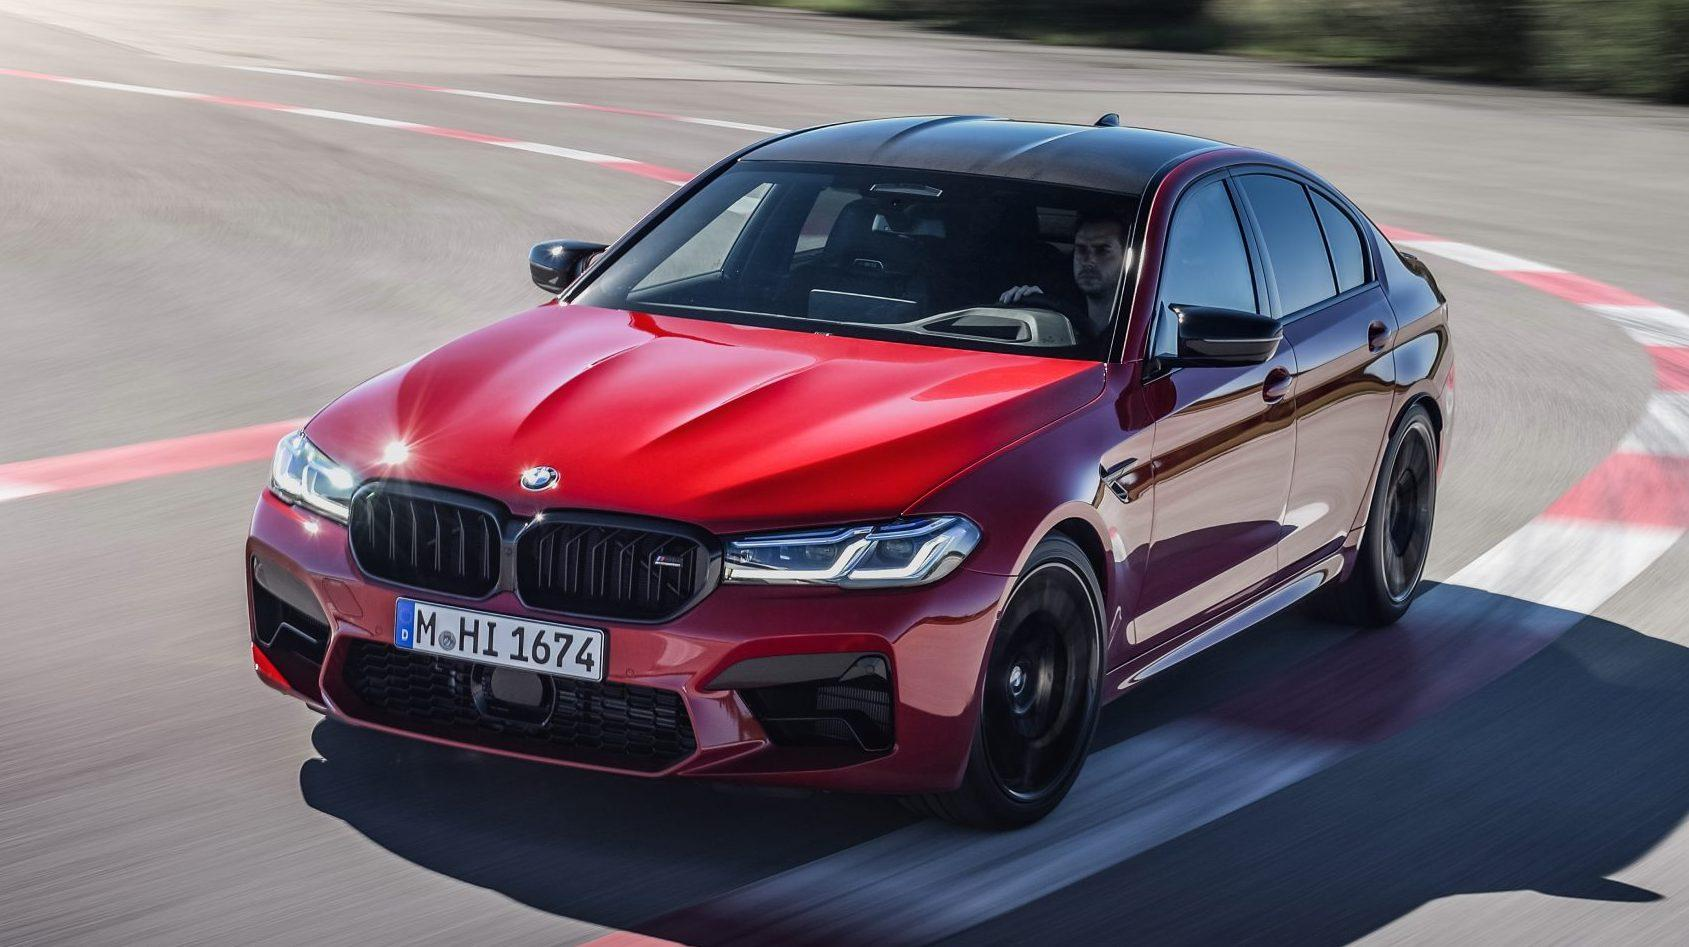 BMW M5 Competition 2020 Facelift (G30) op het circuit